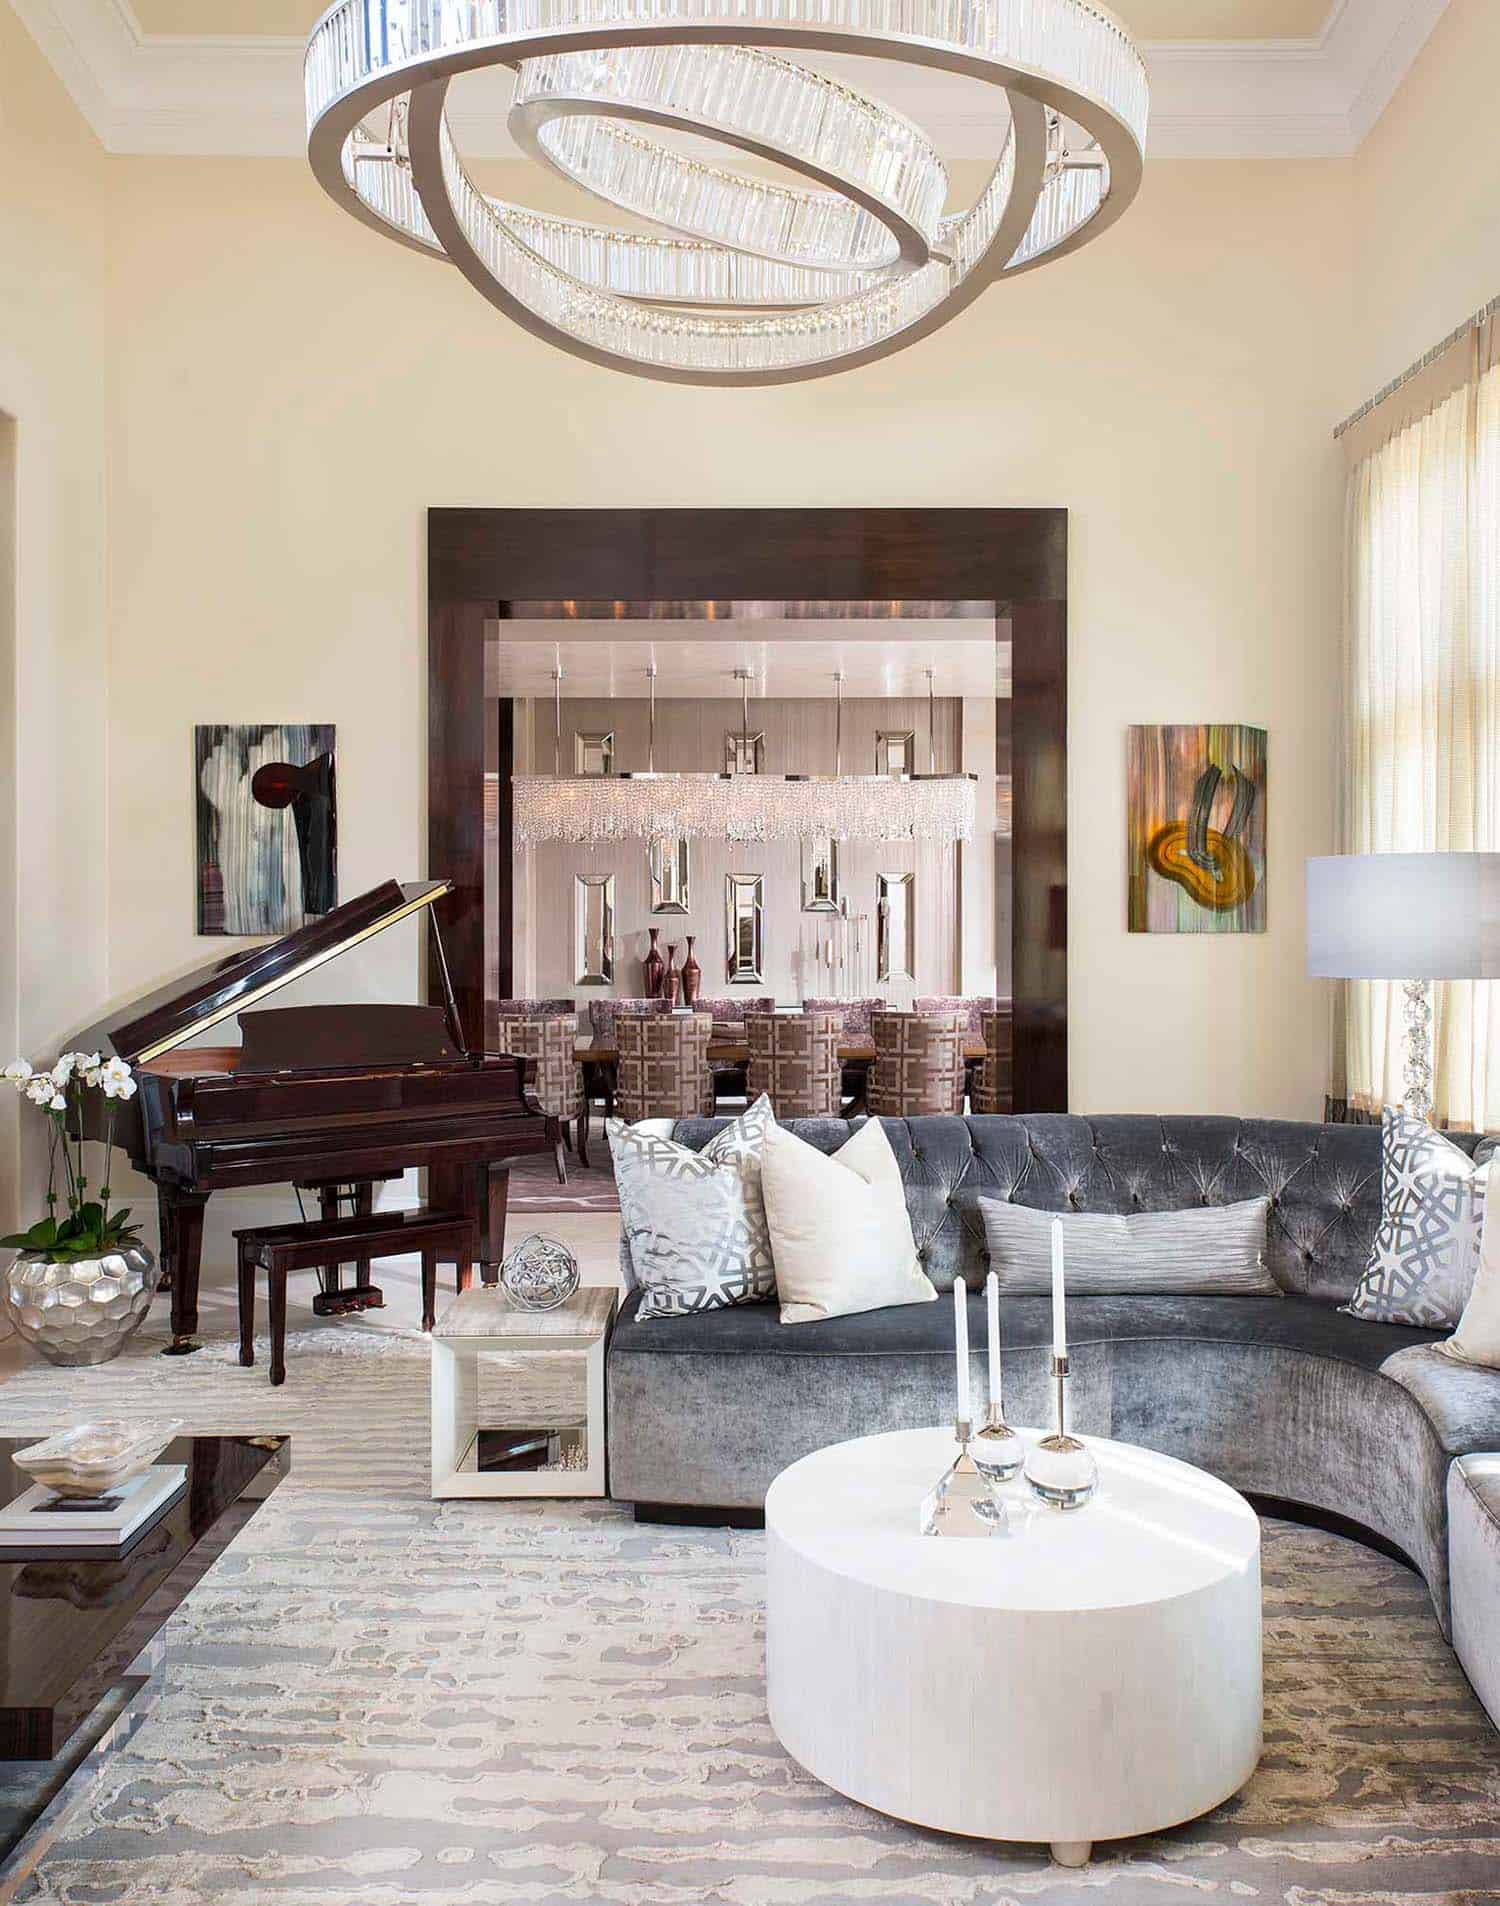 Contemporary Style Home-Dallas Design Group-04-1 Kindesign